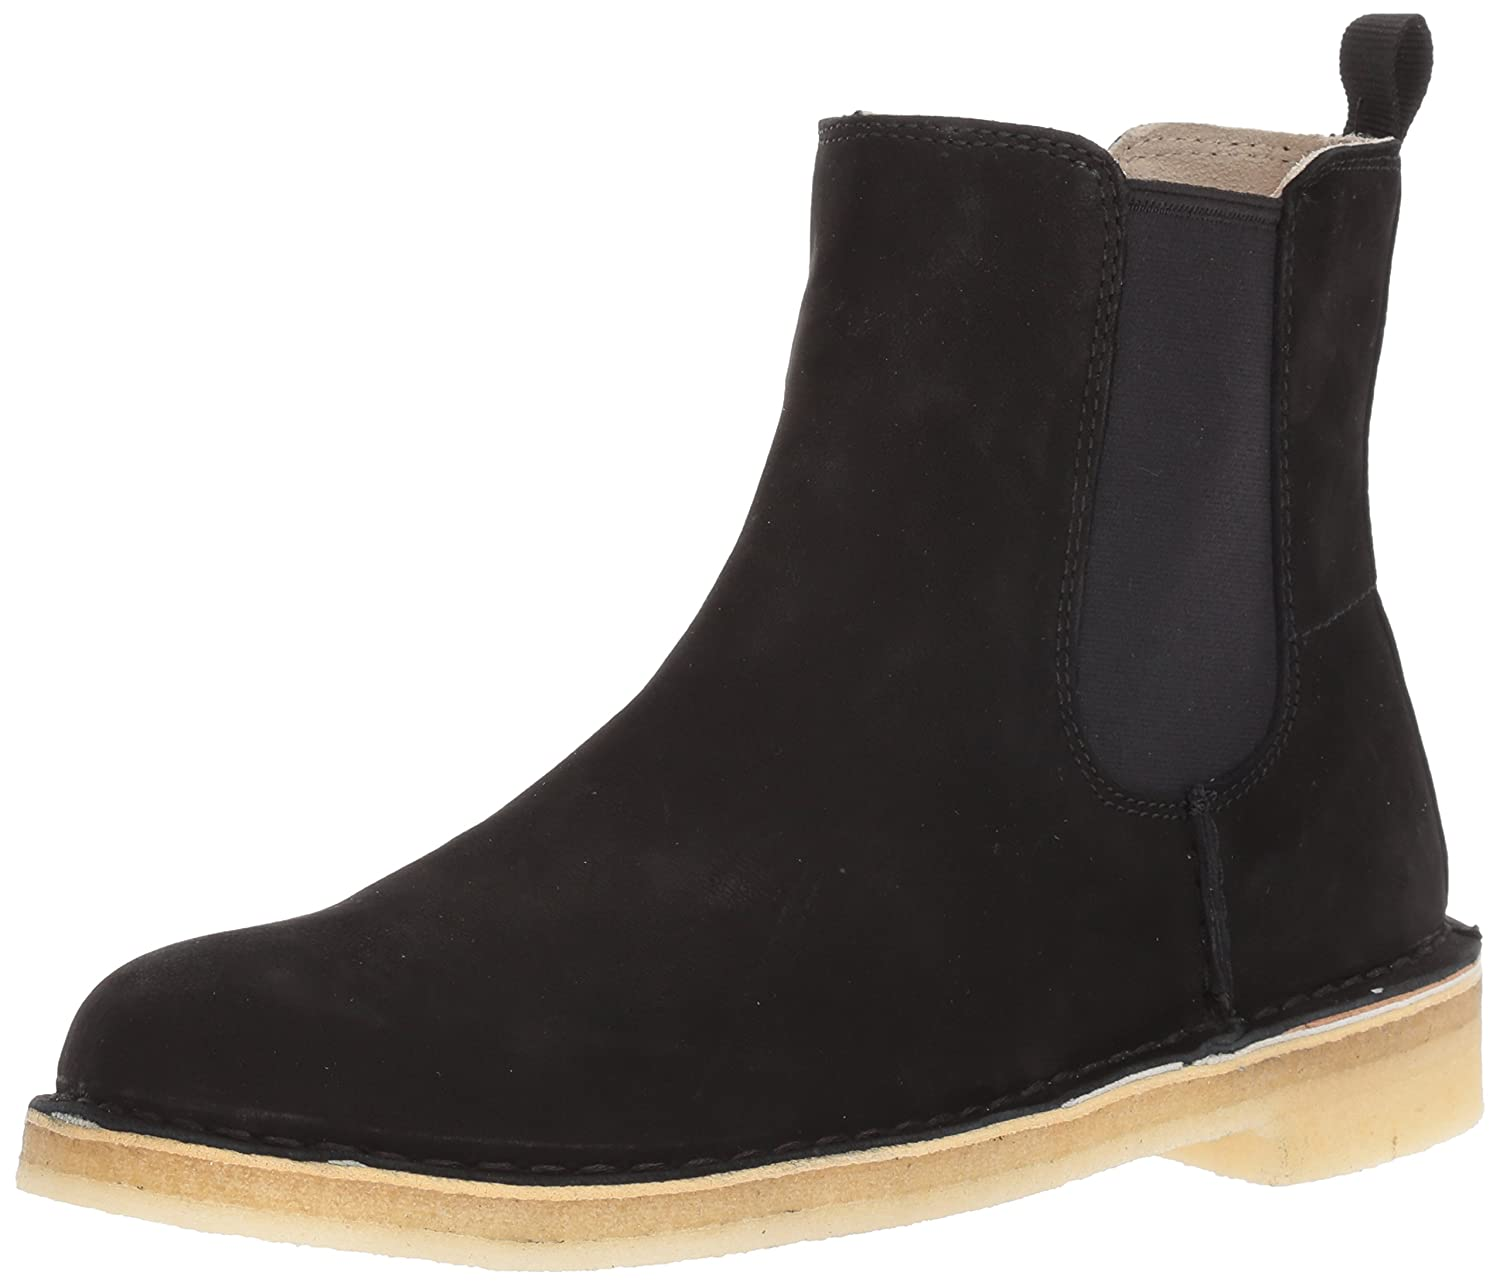 CLARKS Women's Desert Peak. Chelsea Boot B01MQVEX8G 6 B(M) US|Beeswax Black Leather